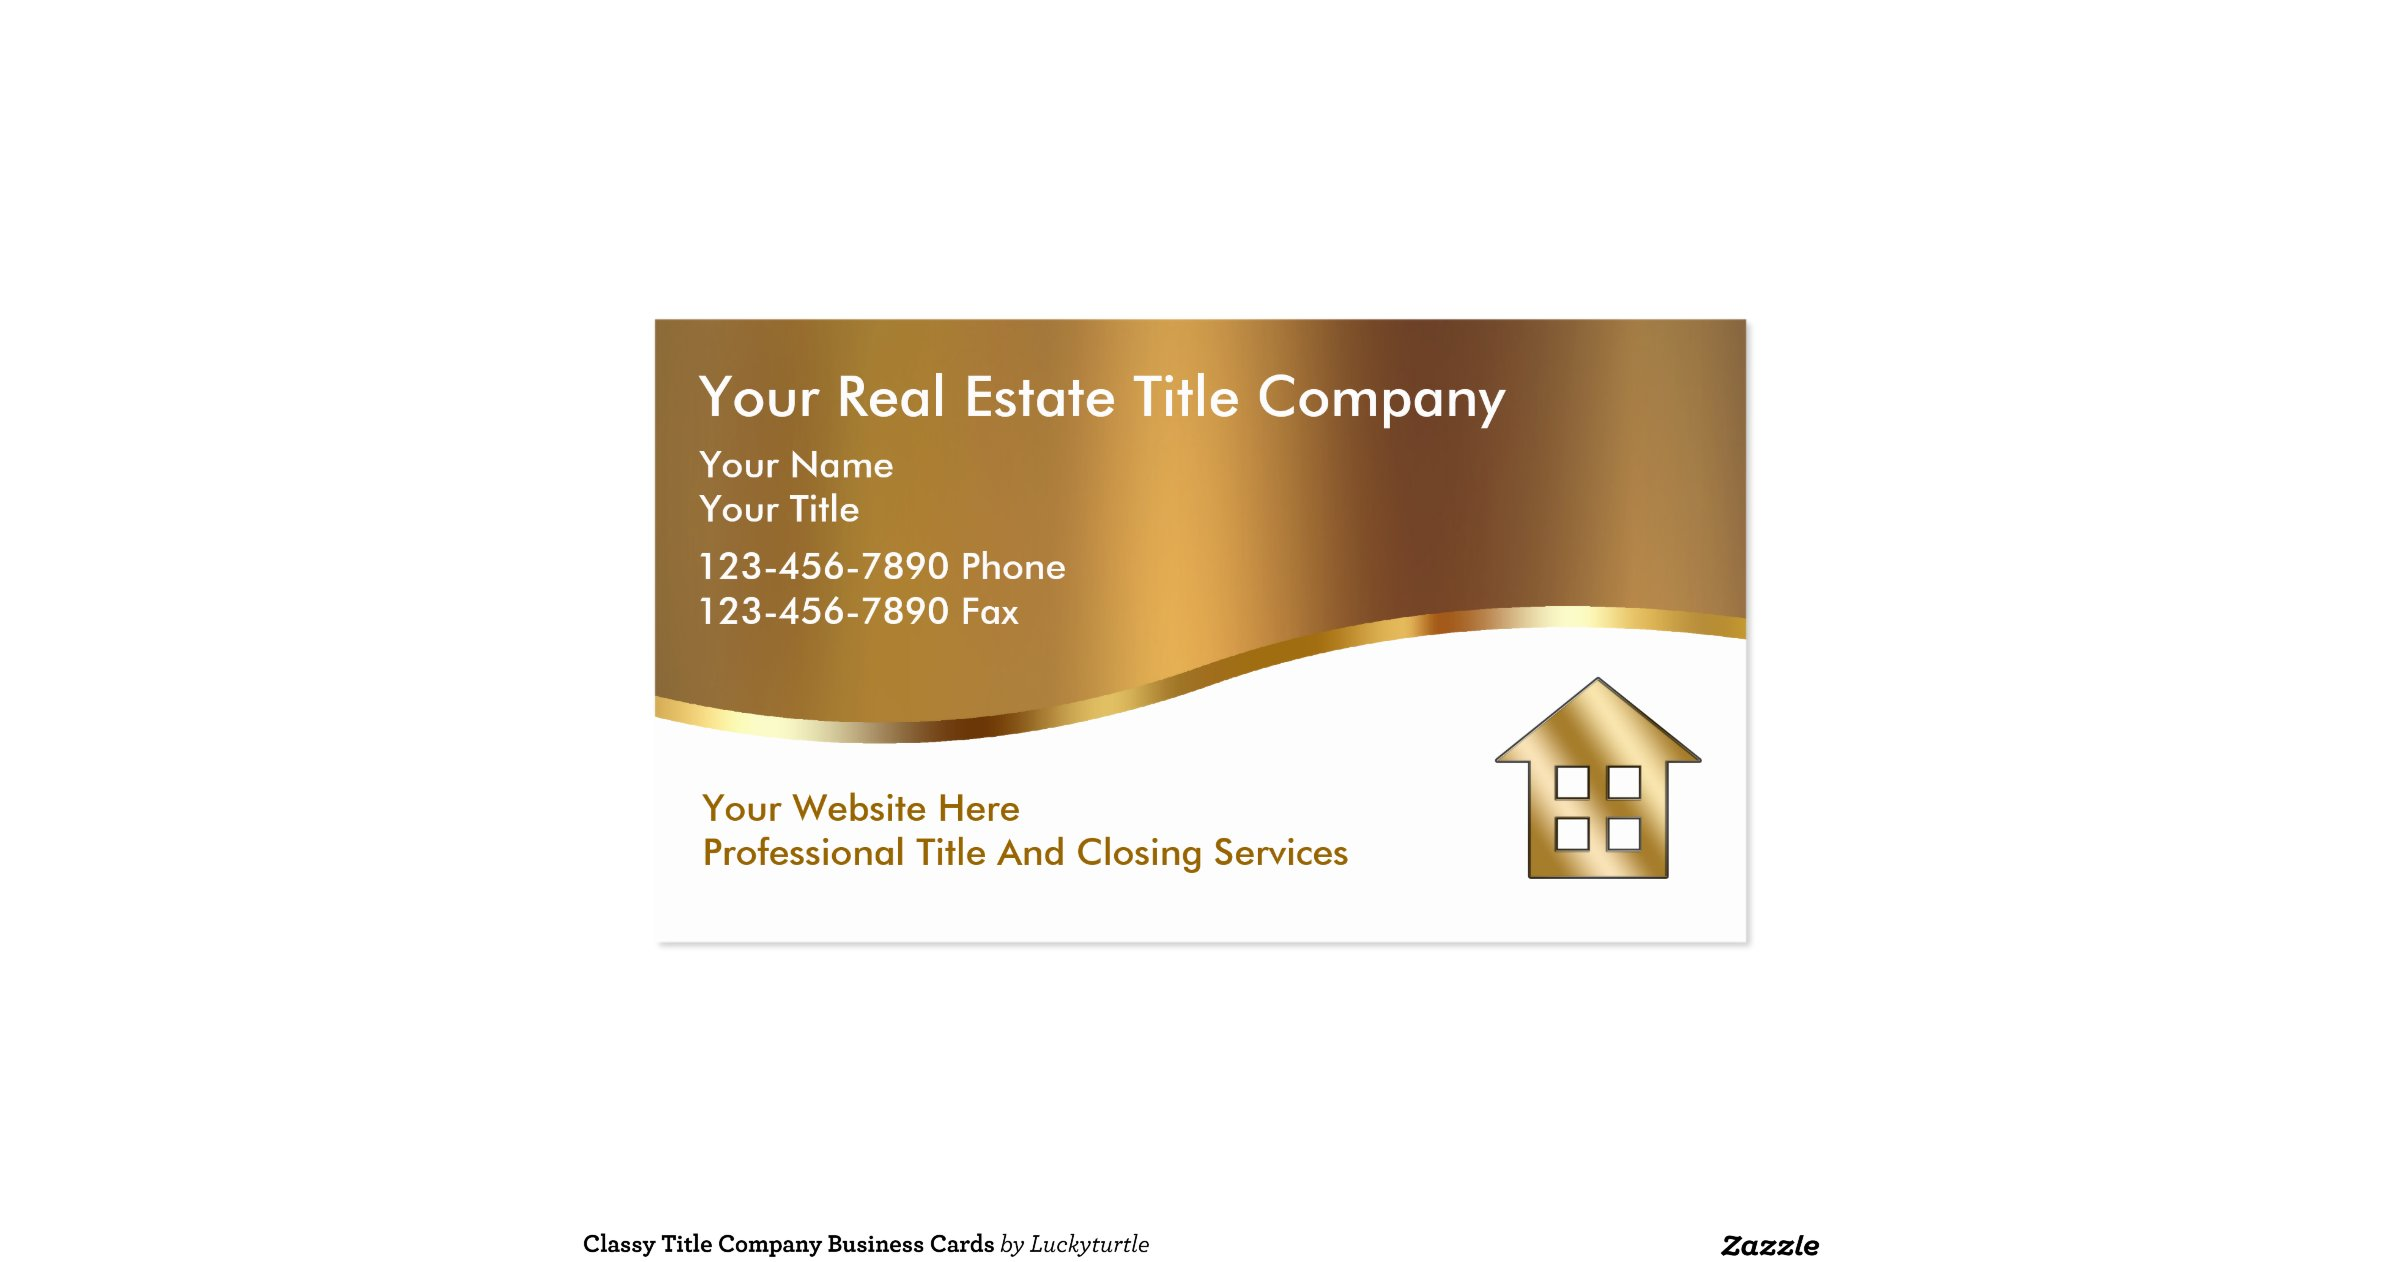 Classy title company business cards for Business development titles for business cards